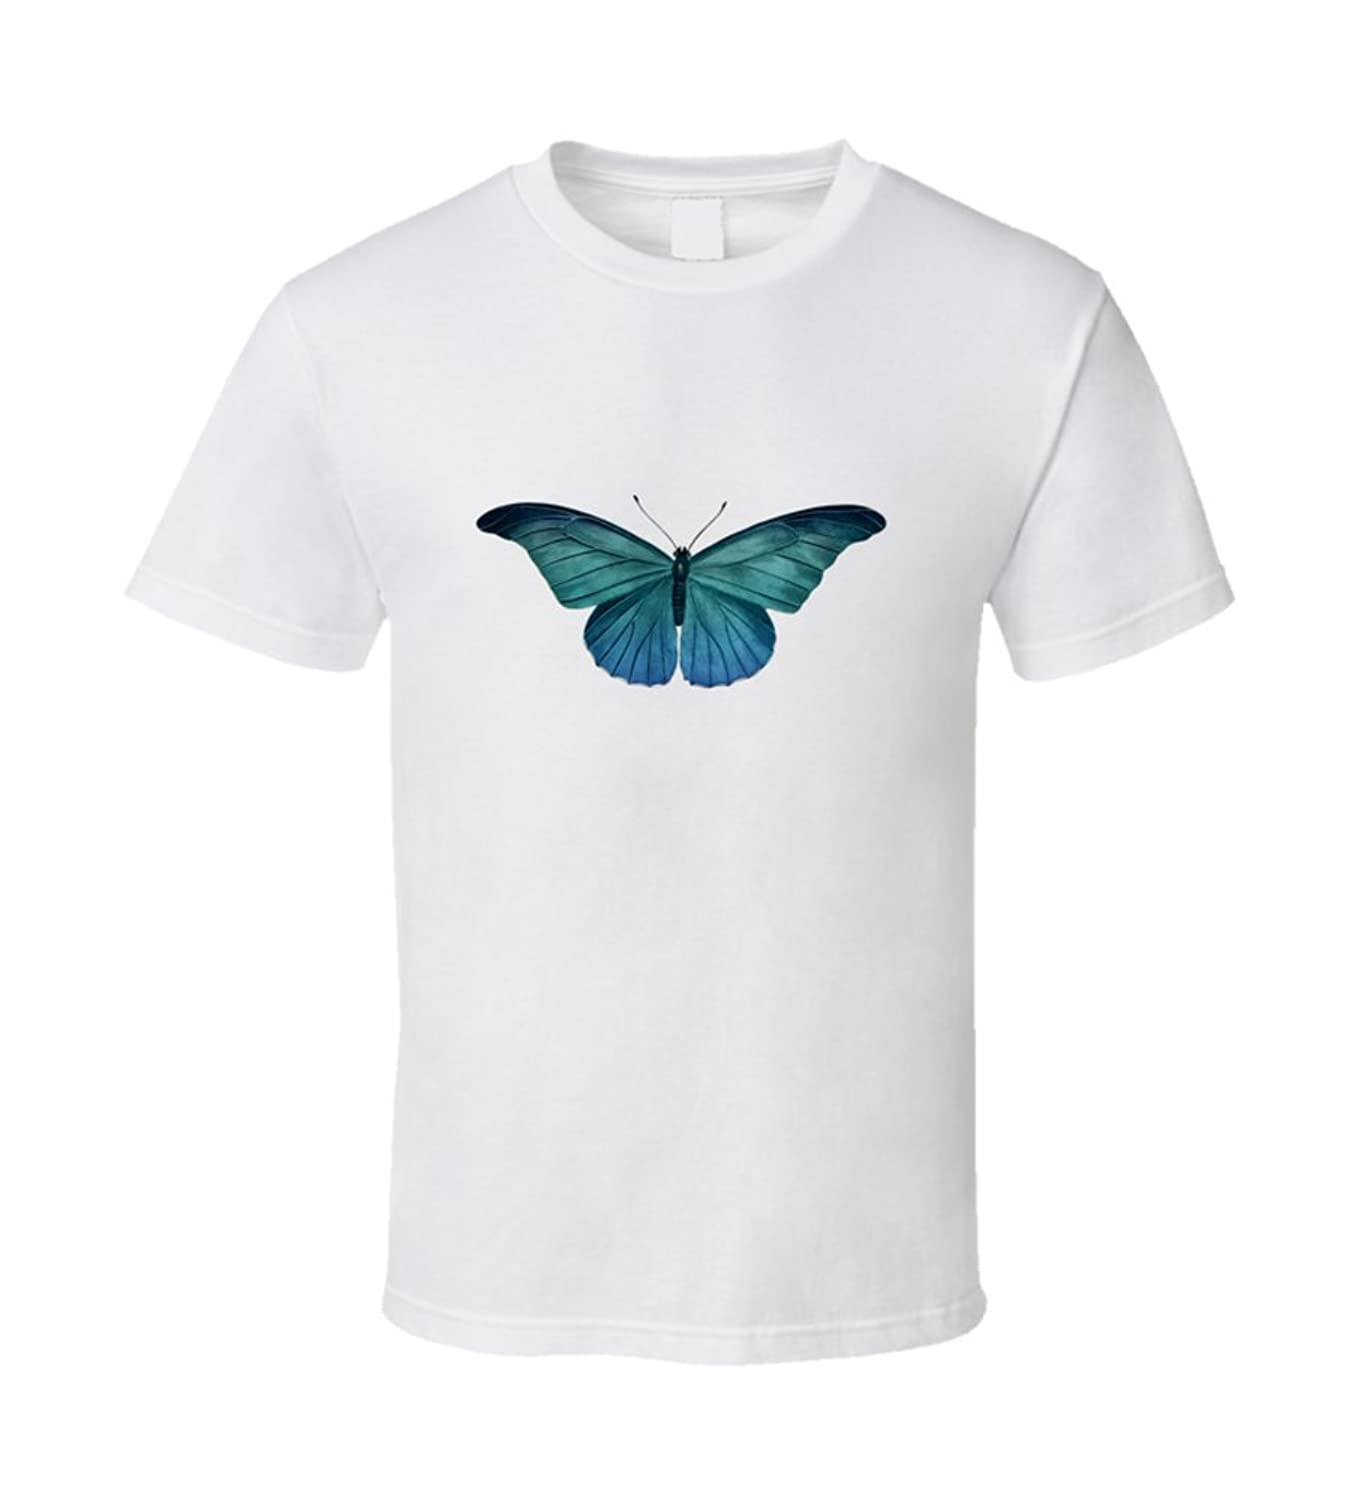 Tiny Flair's Butterfly T Shirt